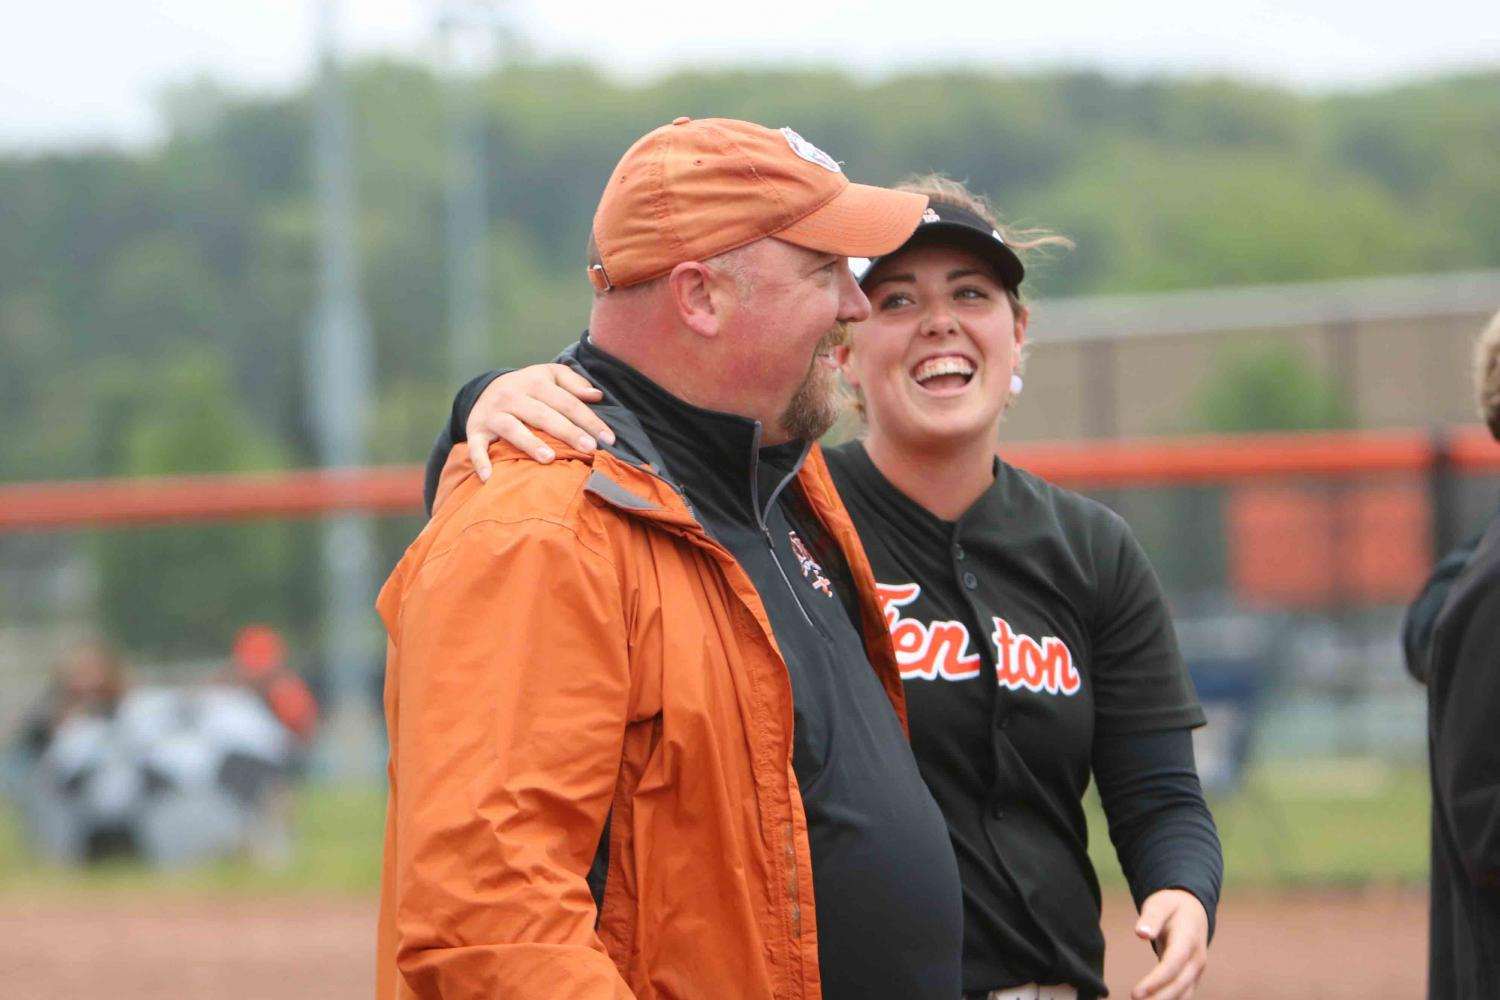 During her last home game, senior Meaghan McArdle laughs along with her dad. This years varsity team had a total of 5 seniors graduating.